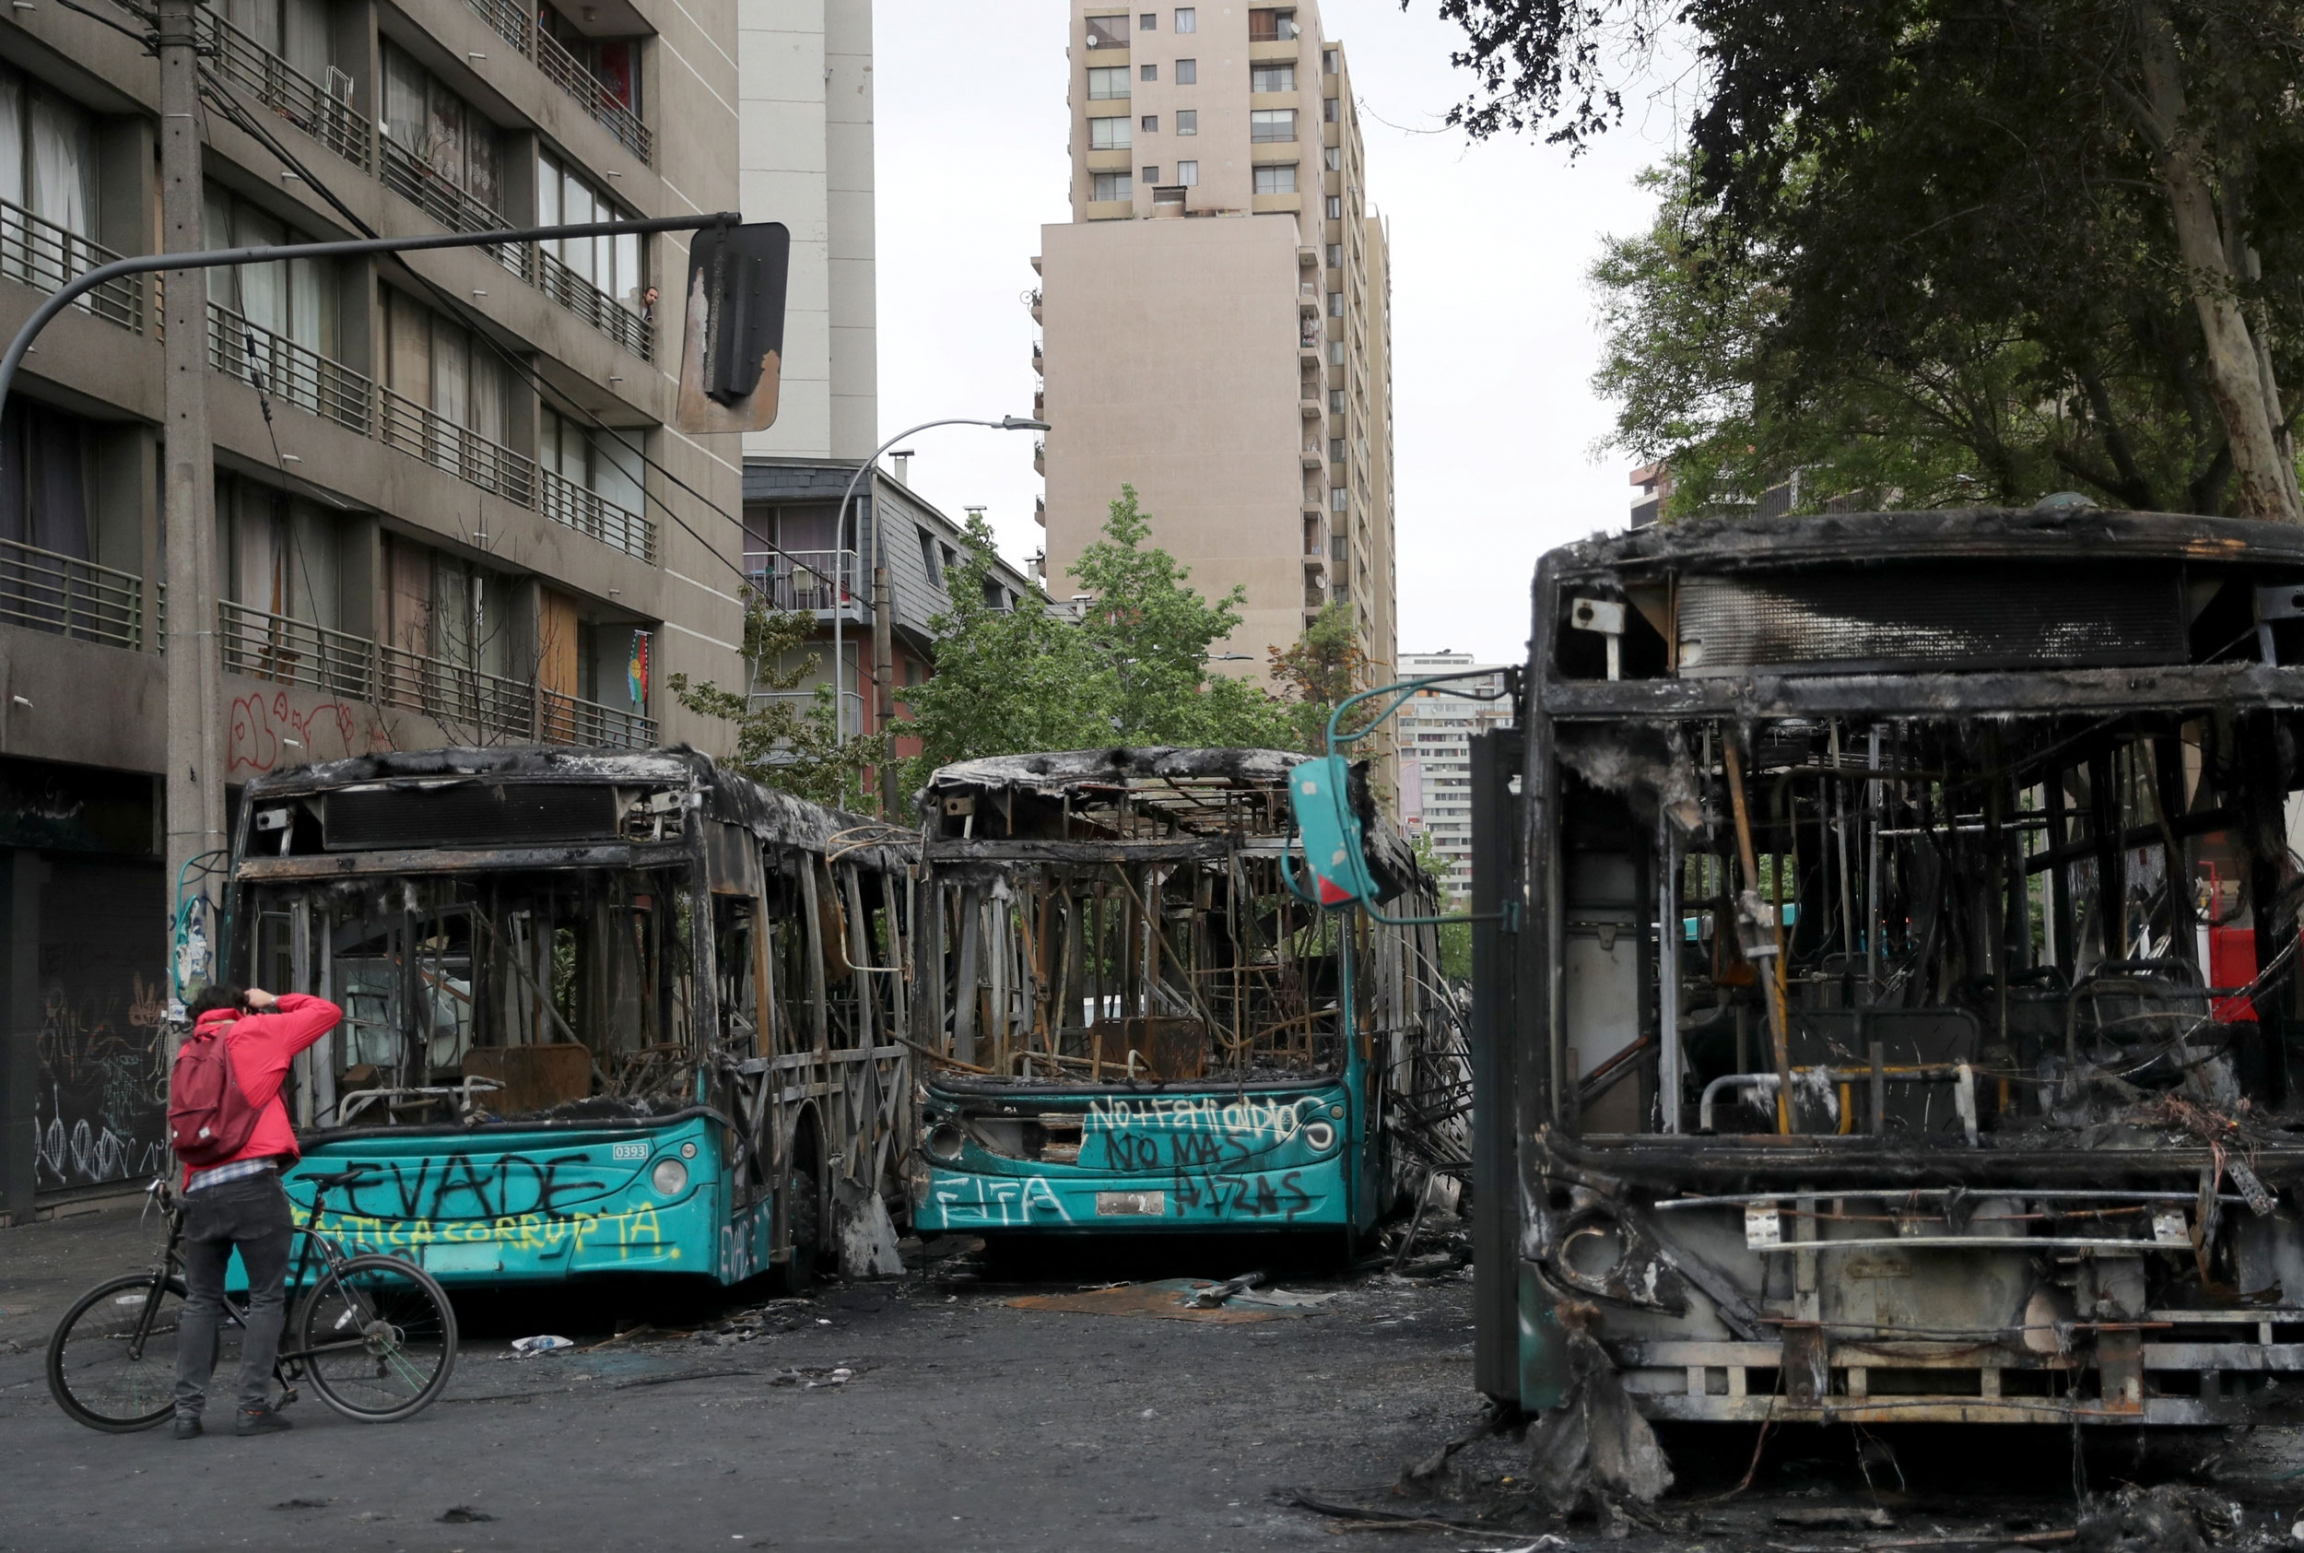 A man is shown with a bicycle standing in front of three totally burned out buses in a street.